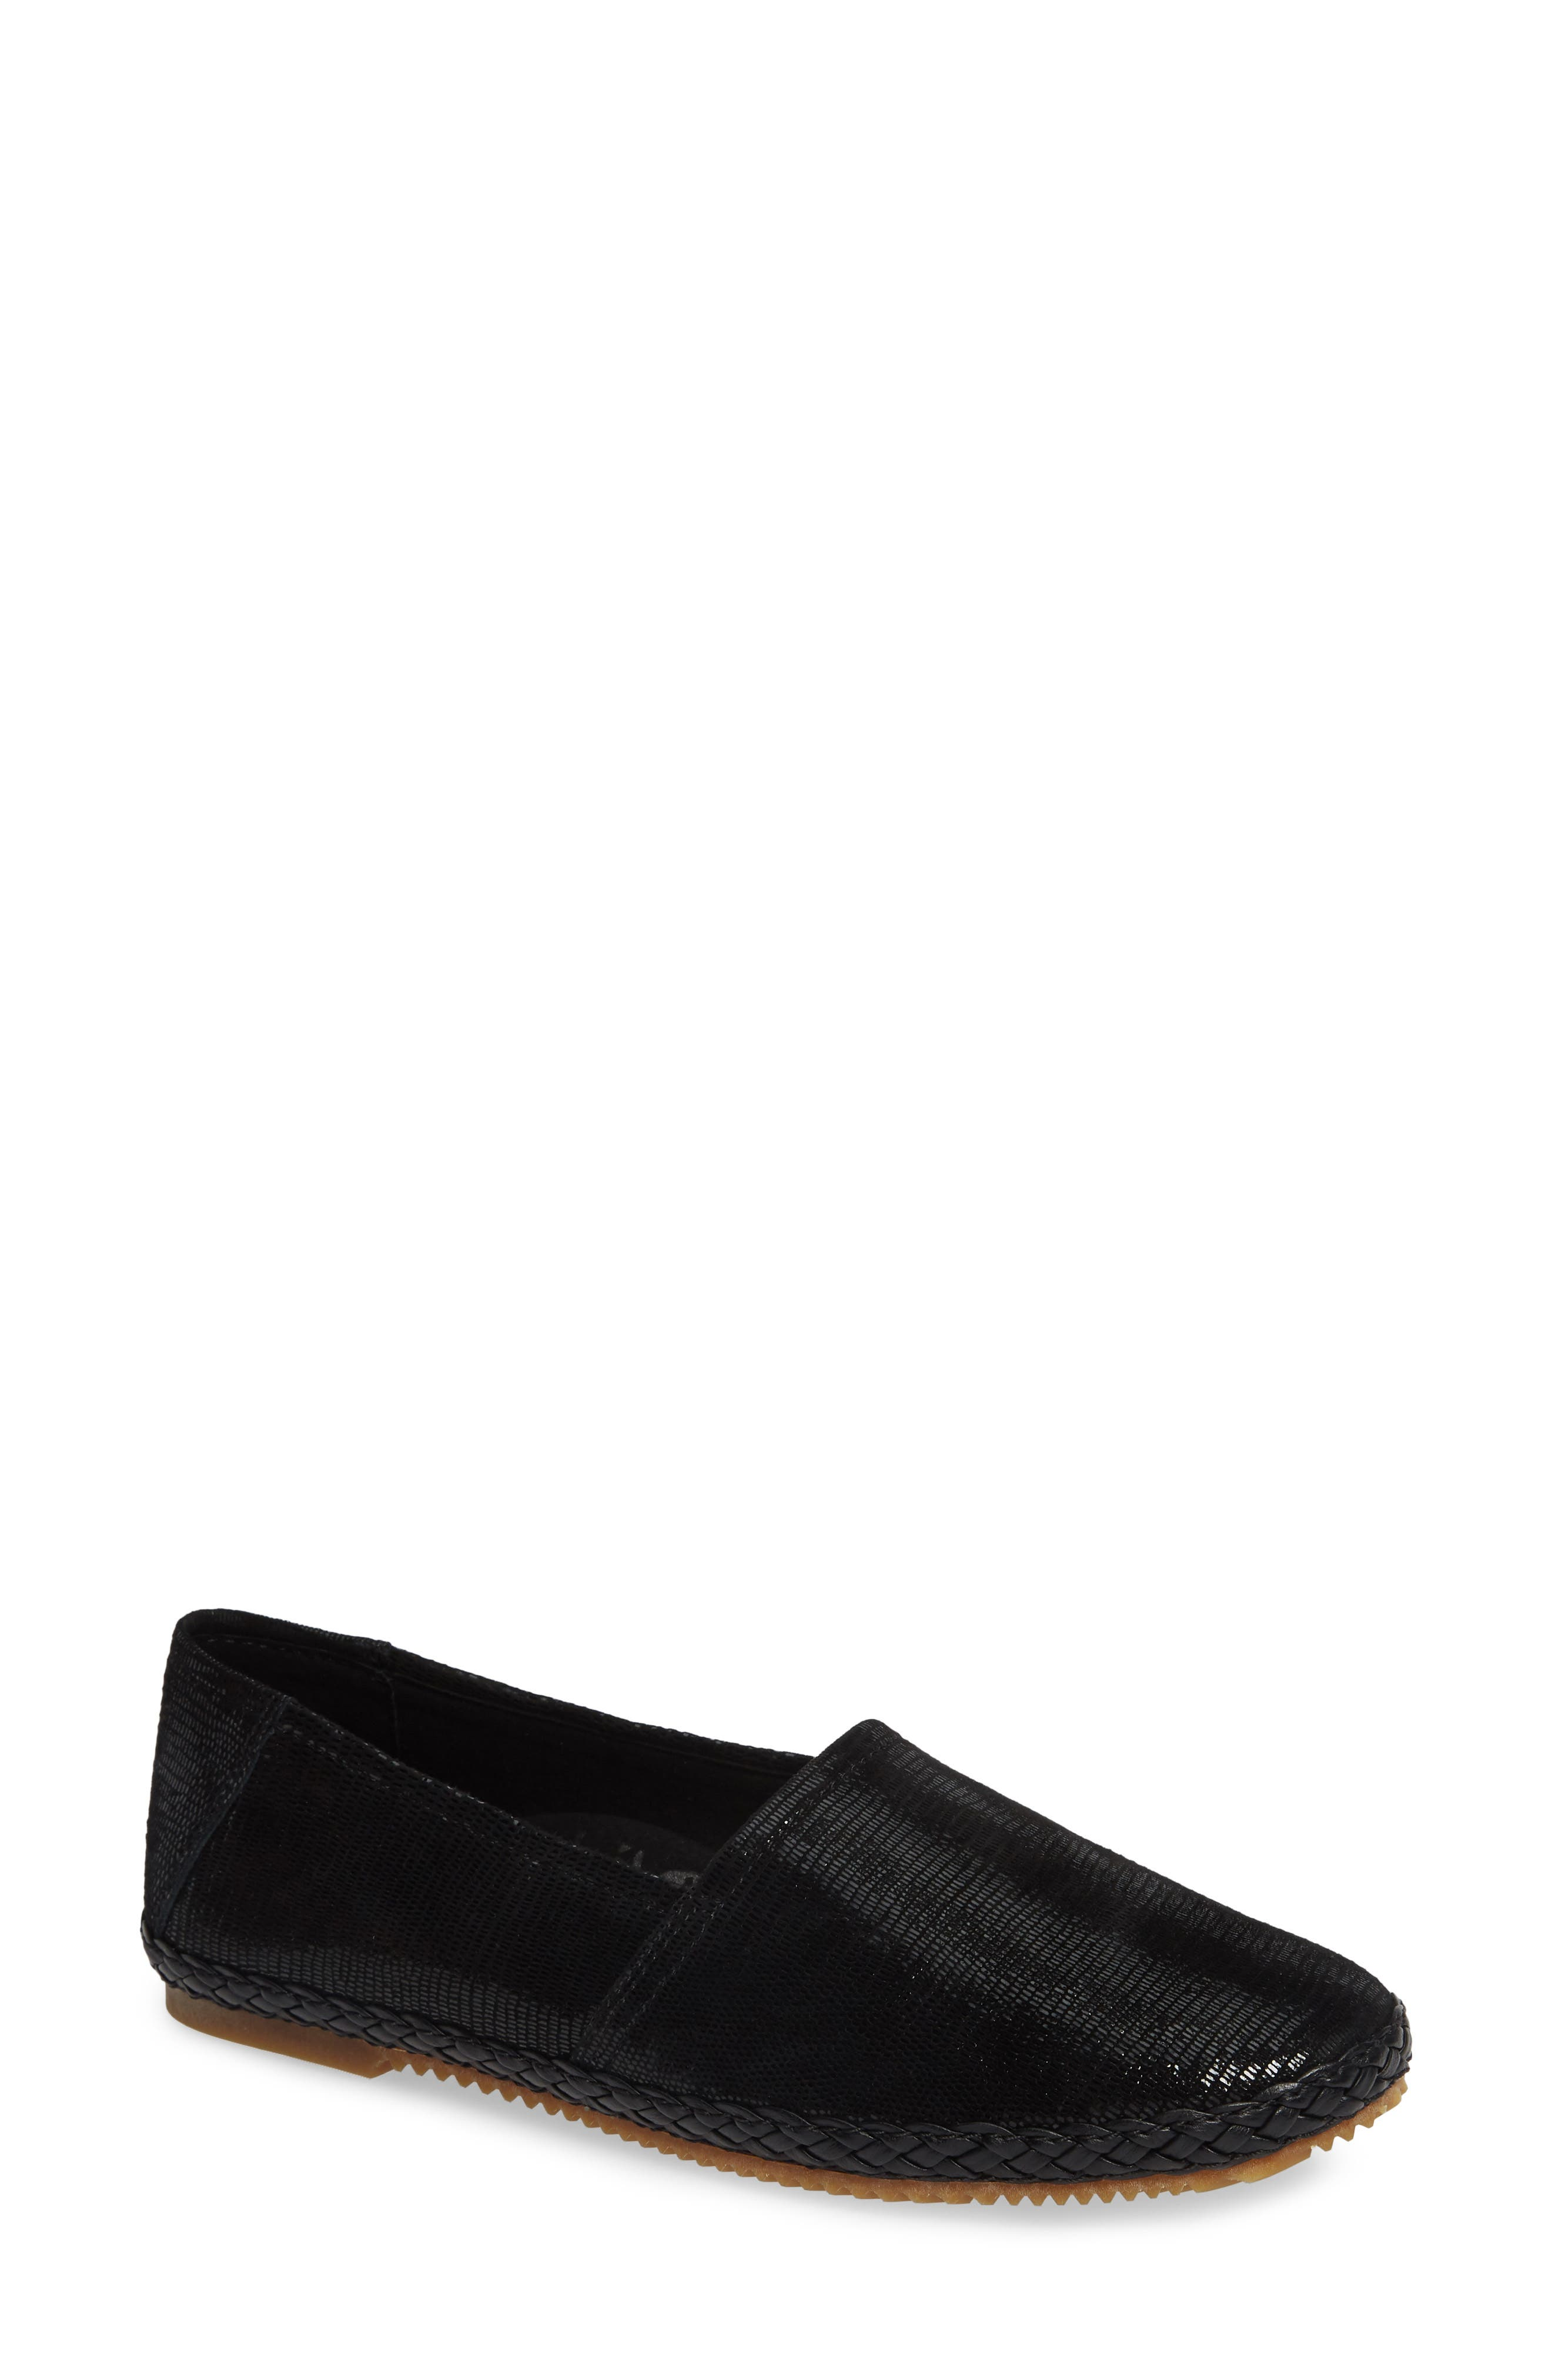 AETREX,                             Kylie Flat,                             Main thumbnail 1, color,                             BLACK SNAKE LEATHER